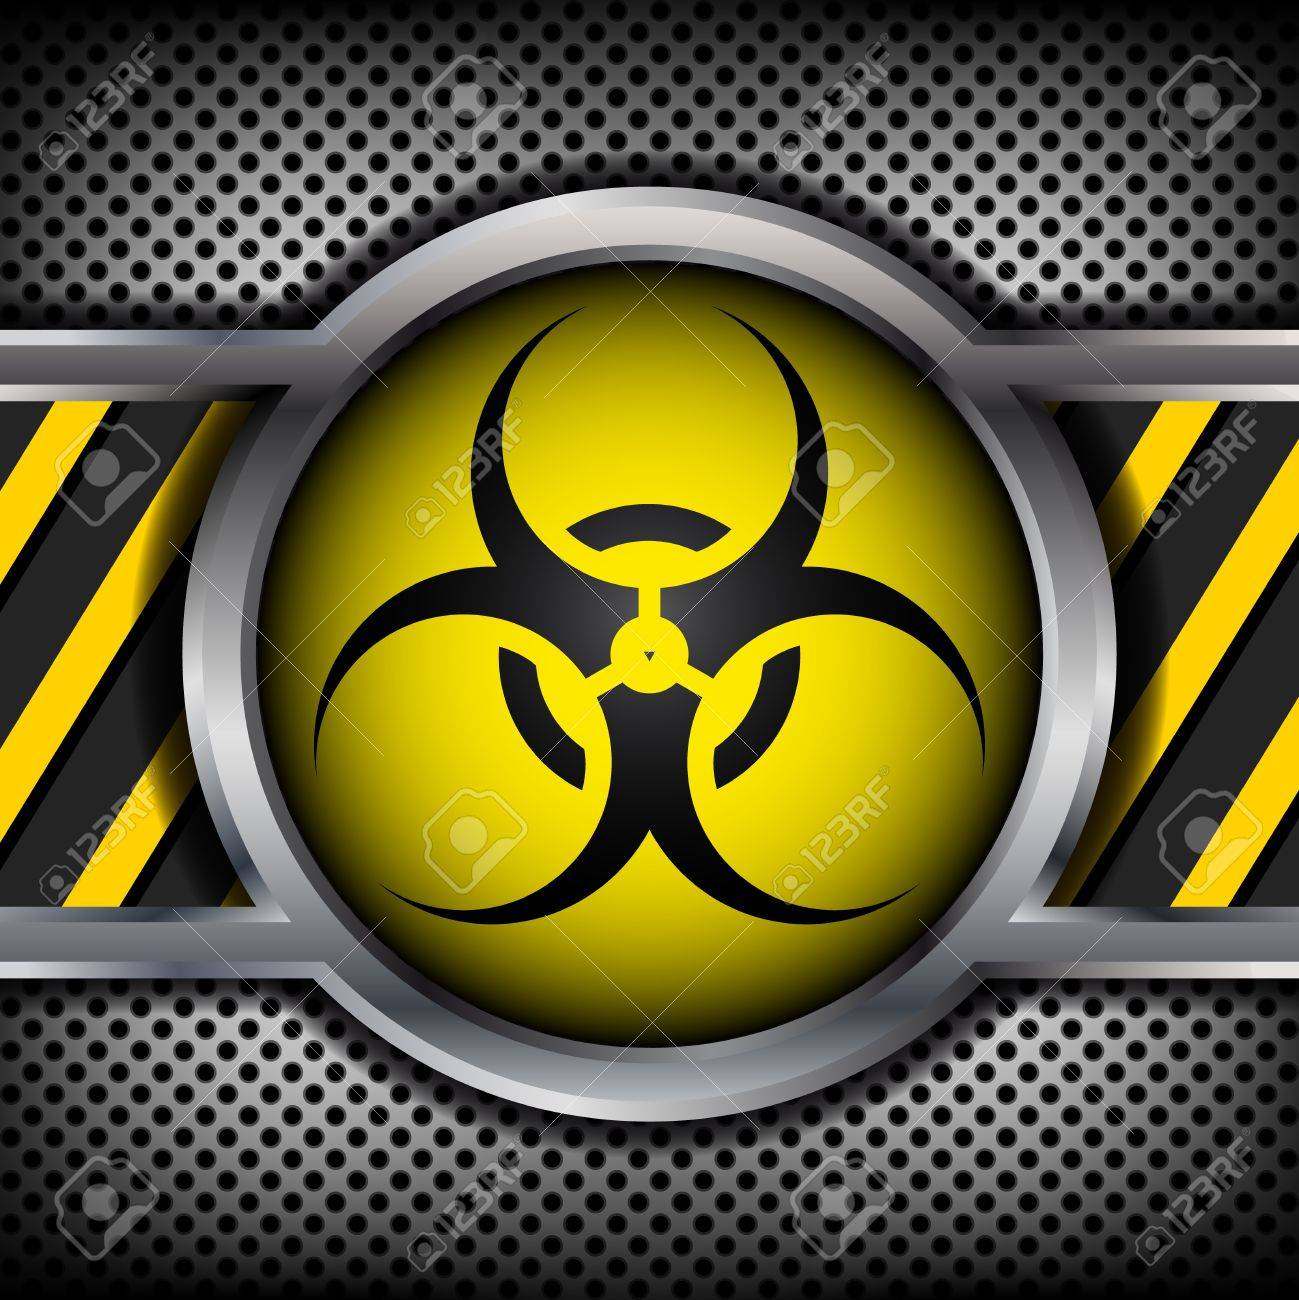 Biohazard sign on a metal background Stock Vector - 15399361